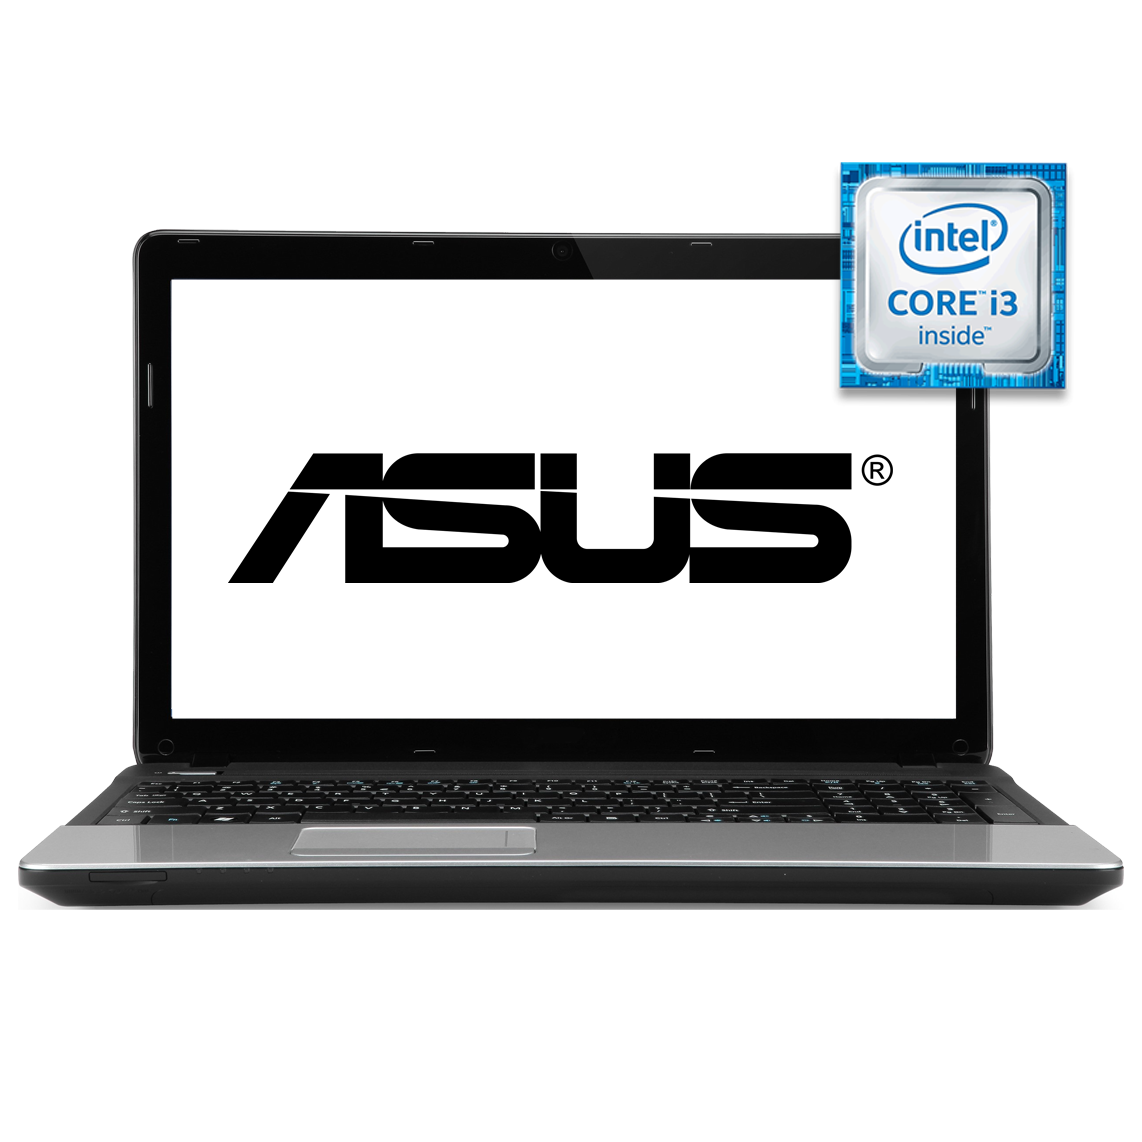 ASUS - 16 inch Core i3 2nd Gen